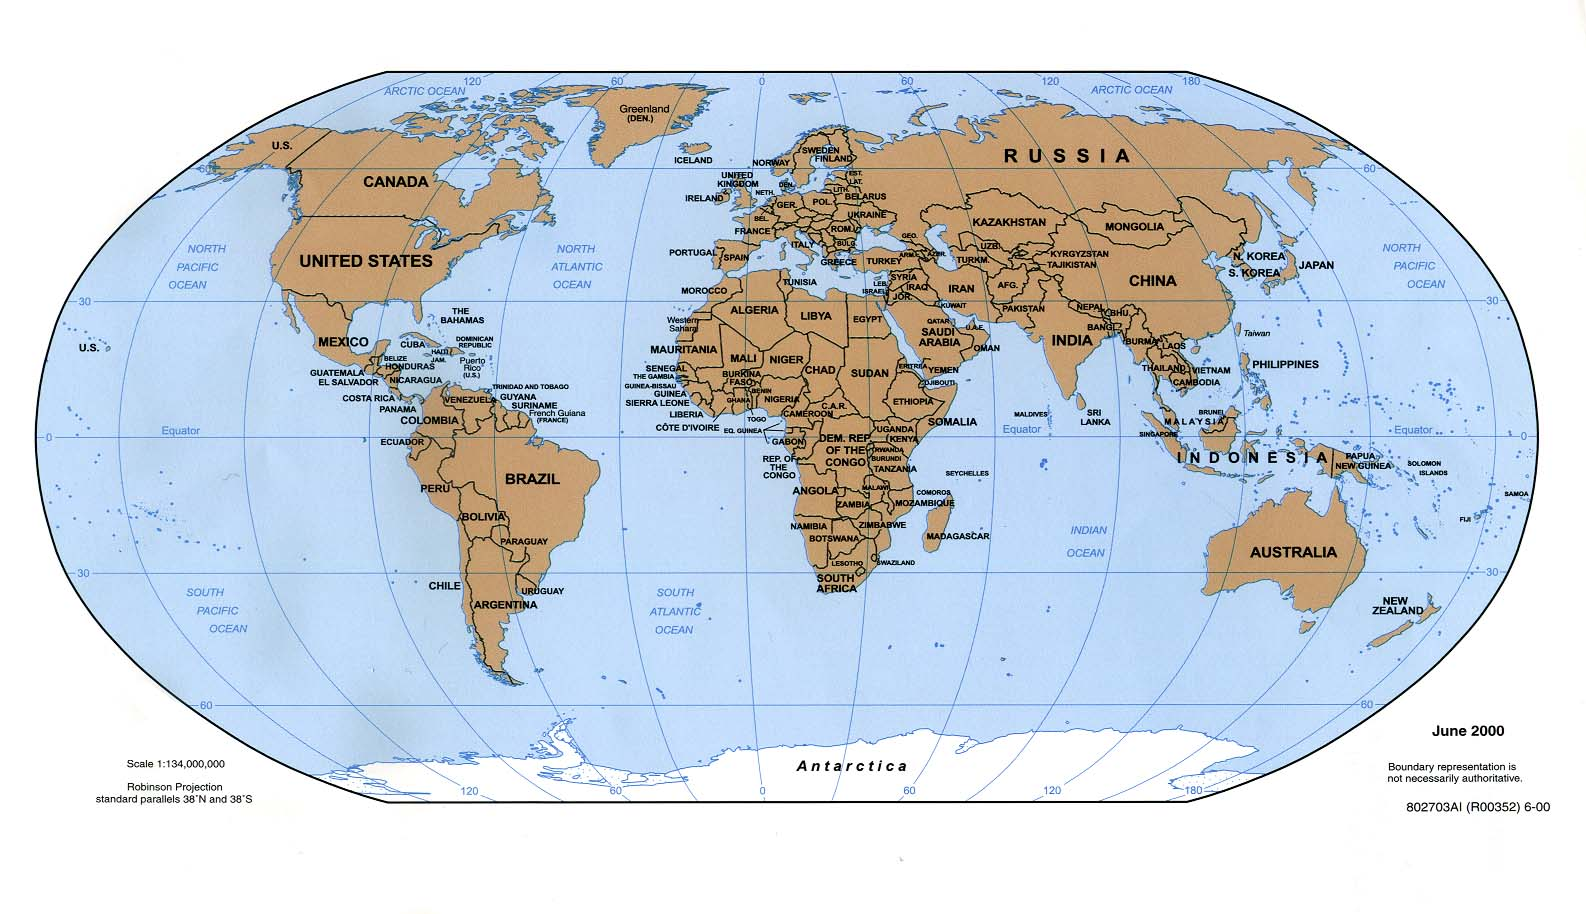 Maps In Light Of Biblical Prophecy